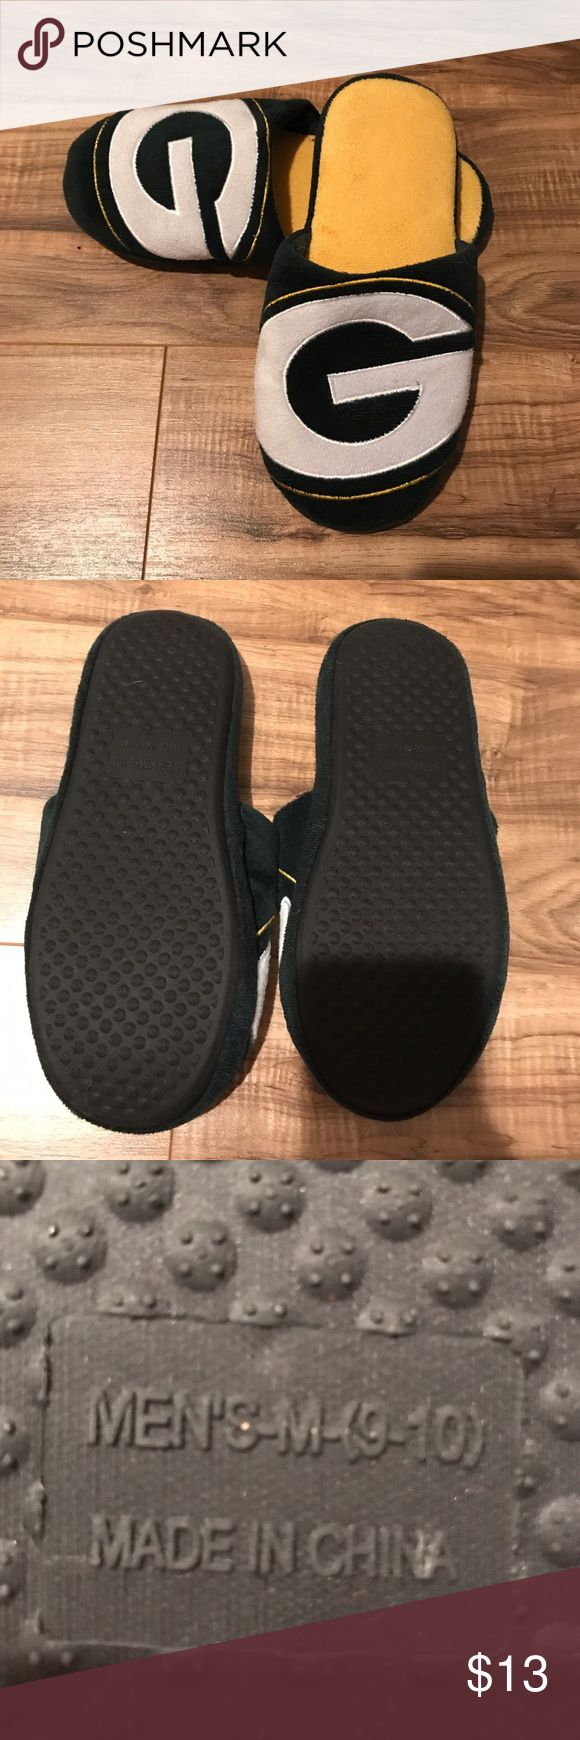 Mens Bedroom Slippers Made In Usa